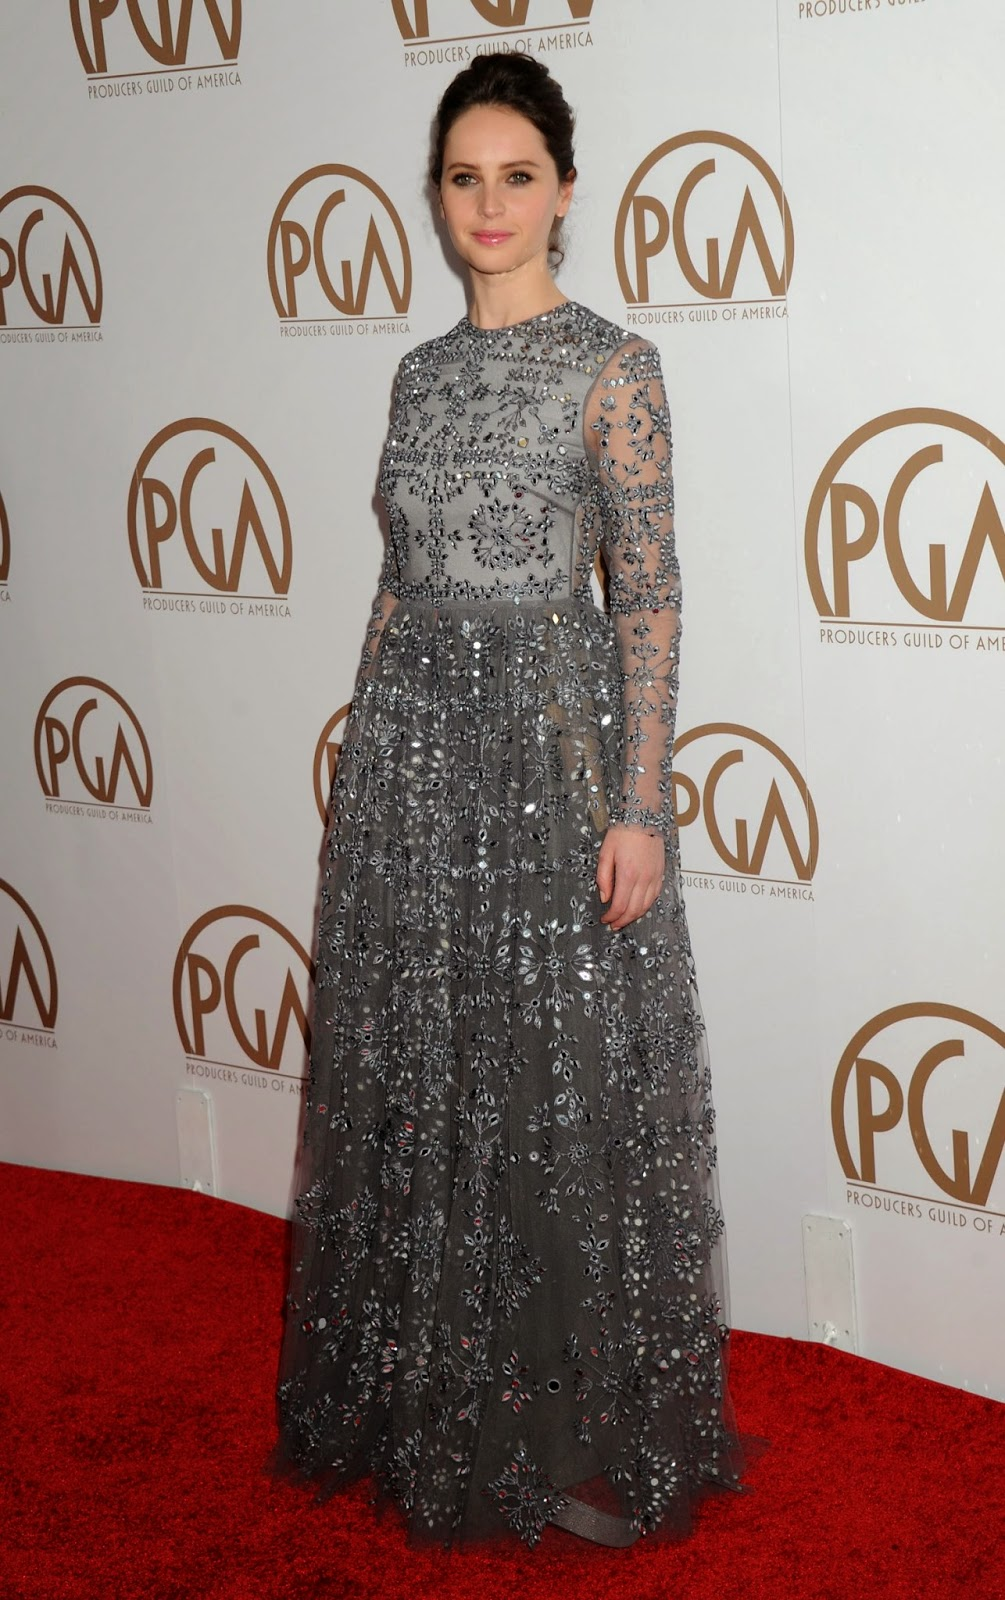 Felicity Jones in a Valentino gown at the 2015 Producers Guild of America Awards in LA